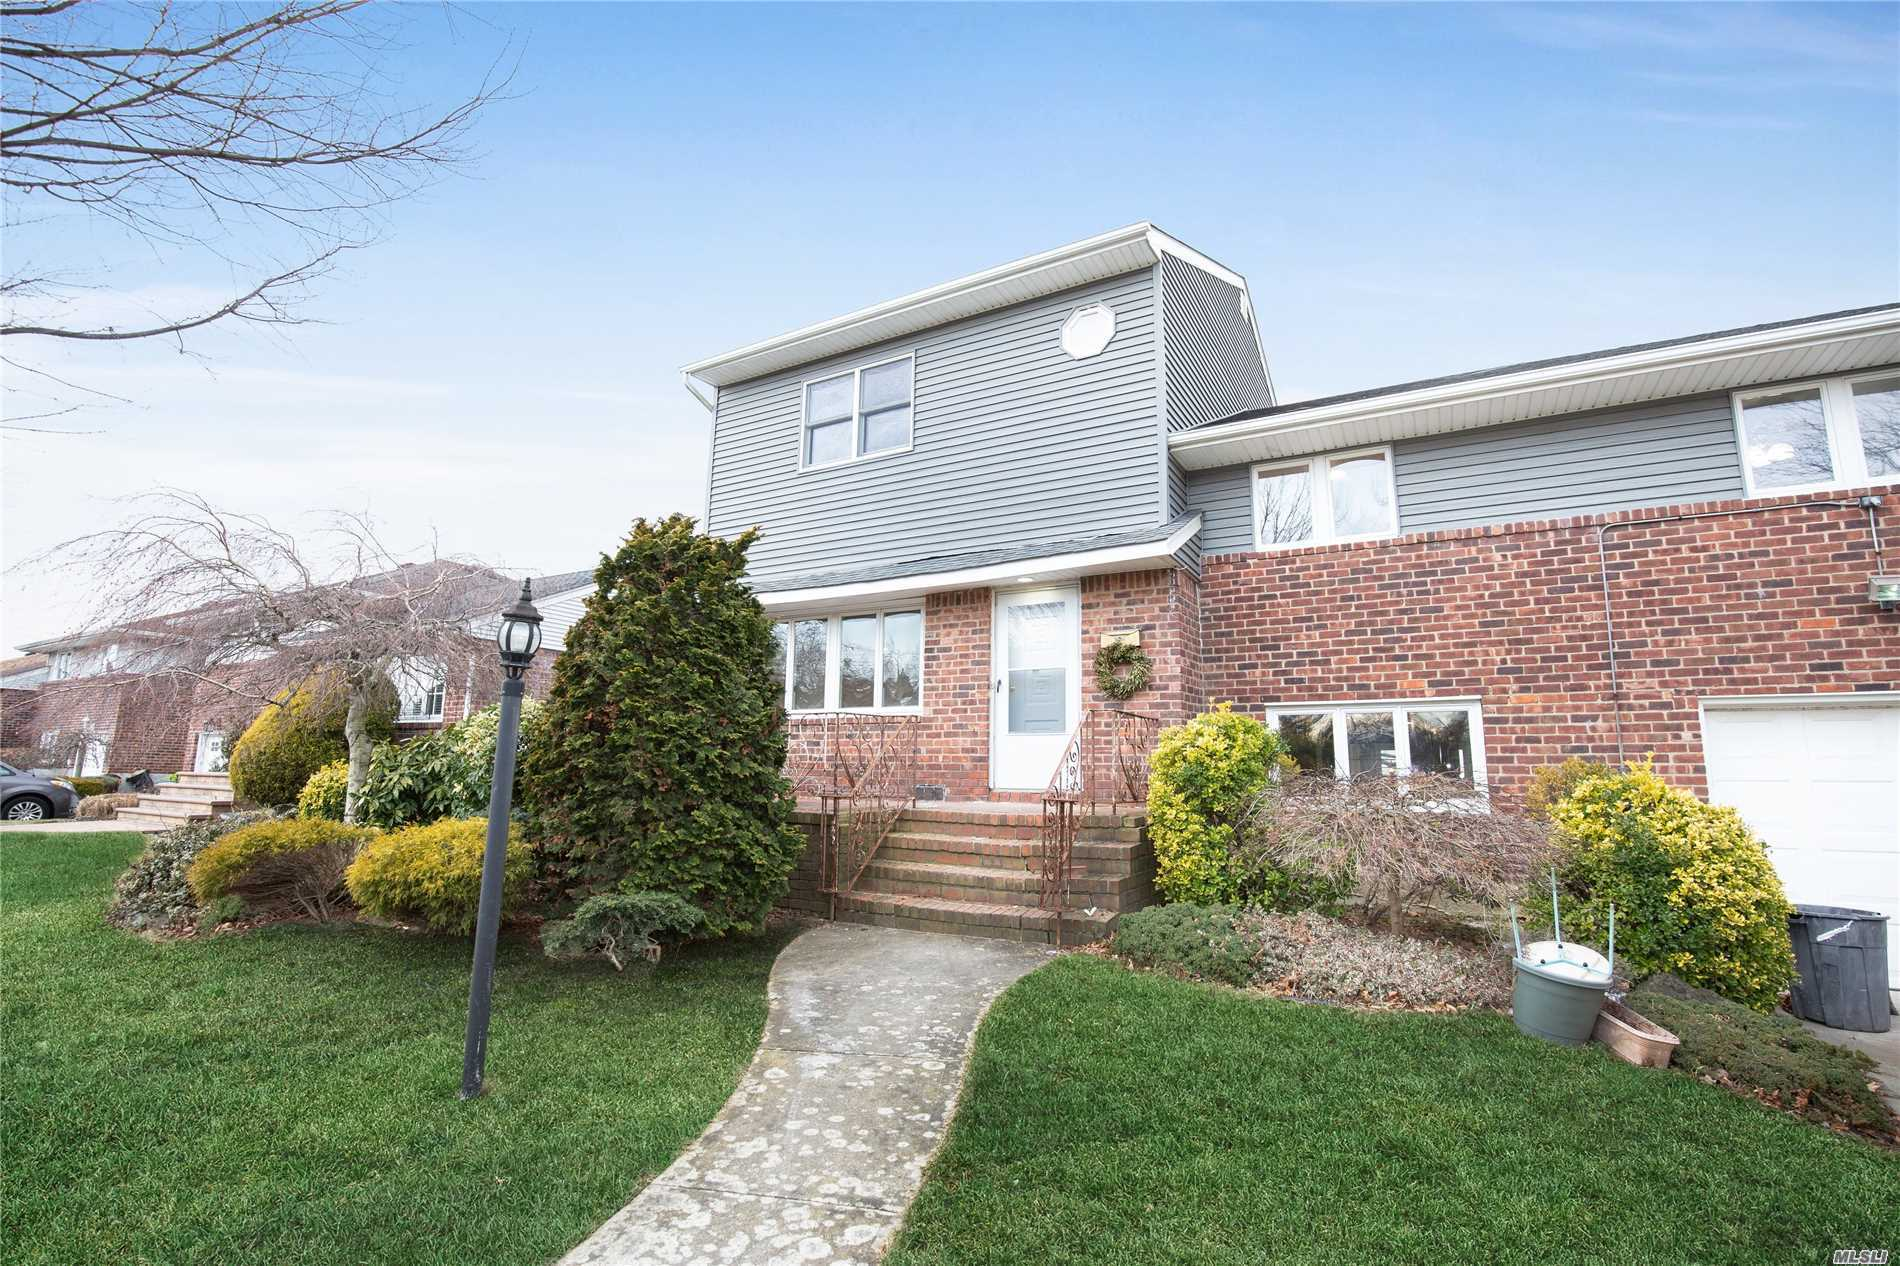 Completely Renovated! One Of A Kind Expanded Split! Open Layout W/Lr, Dr, & Lg Eat In Kitchen W/Huge Island! Ss Appliances, Quartz Counters &Sliders To Rear Deck. Main Level: Family Room W/Wood Burning Fpl &Outside Access As Well As A Den W/Wetbar, Powder Room, Laundry, &Garage Access.Upstairs:Jr Mstr Suite W/Cedar Closet &Full Bth. Add'tl 2 Bed & Full Bath. Dormered Master Bed Suite W/His&Her Walk In Closets, Luxury Master Bath W Radiant Heat Floors! Manor Elem. See Attached Floor Plan!